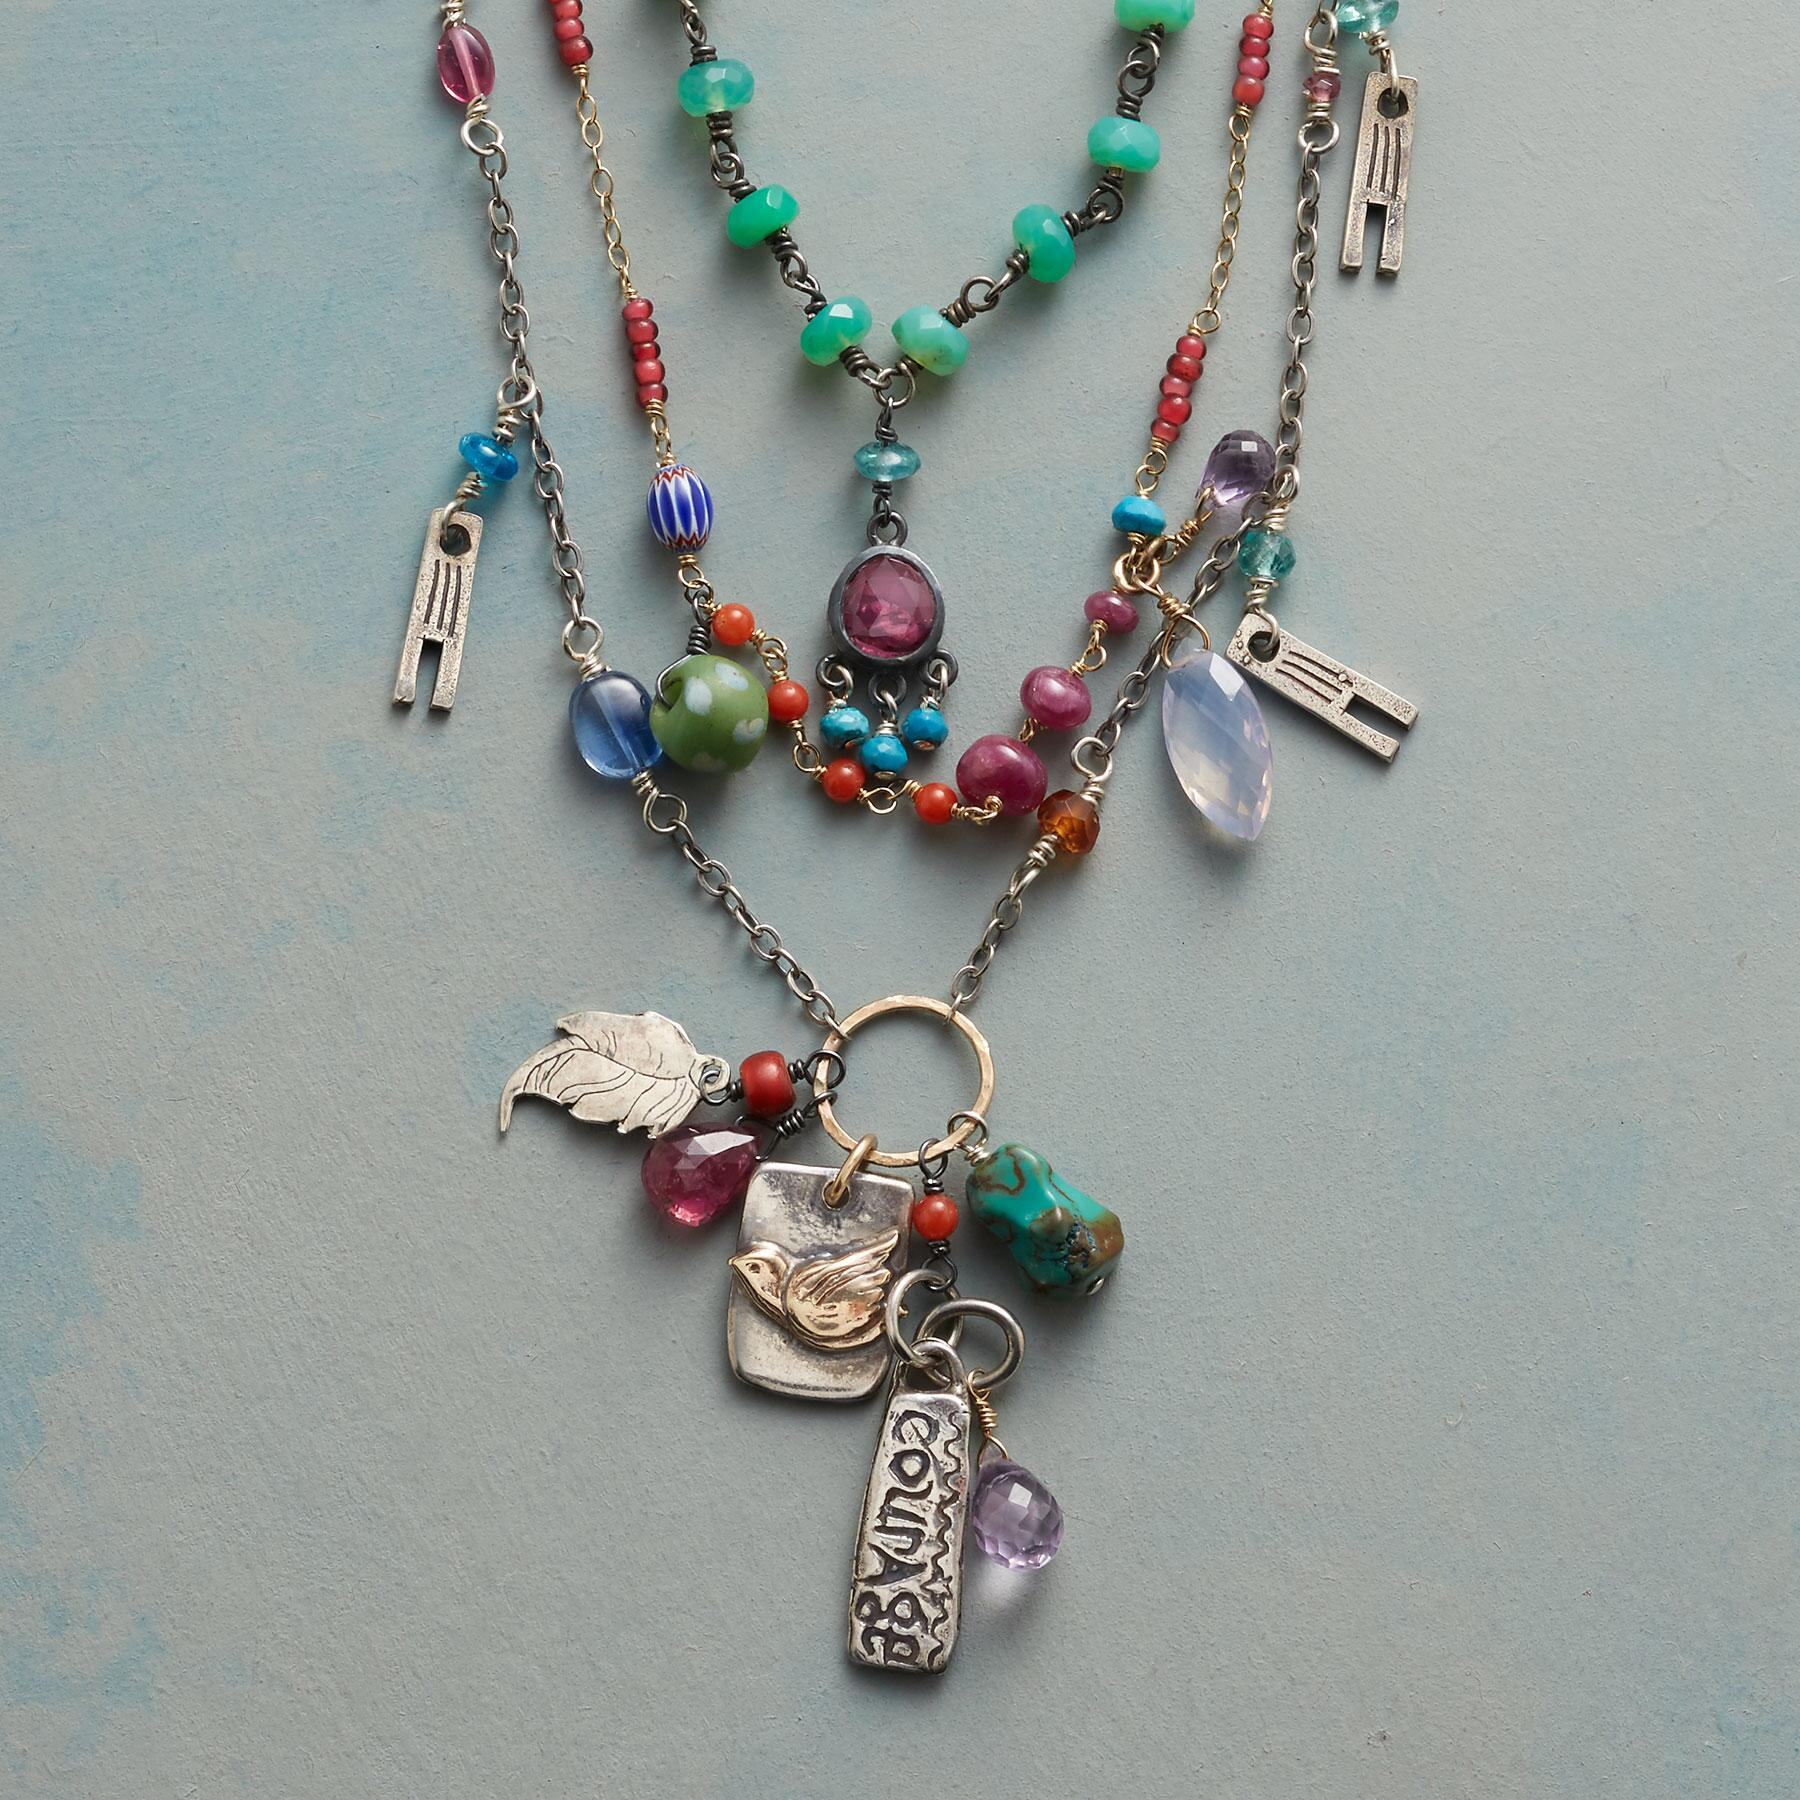 LIFE'S JOURNEY NECKLACE: View 1